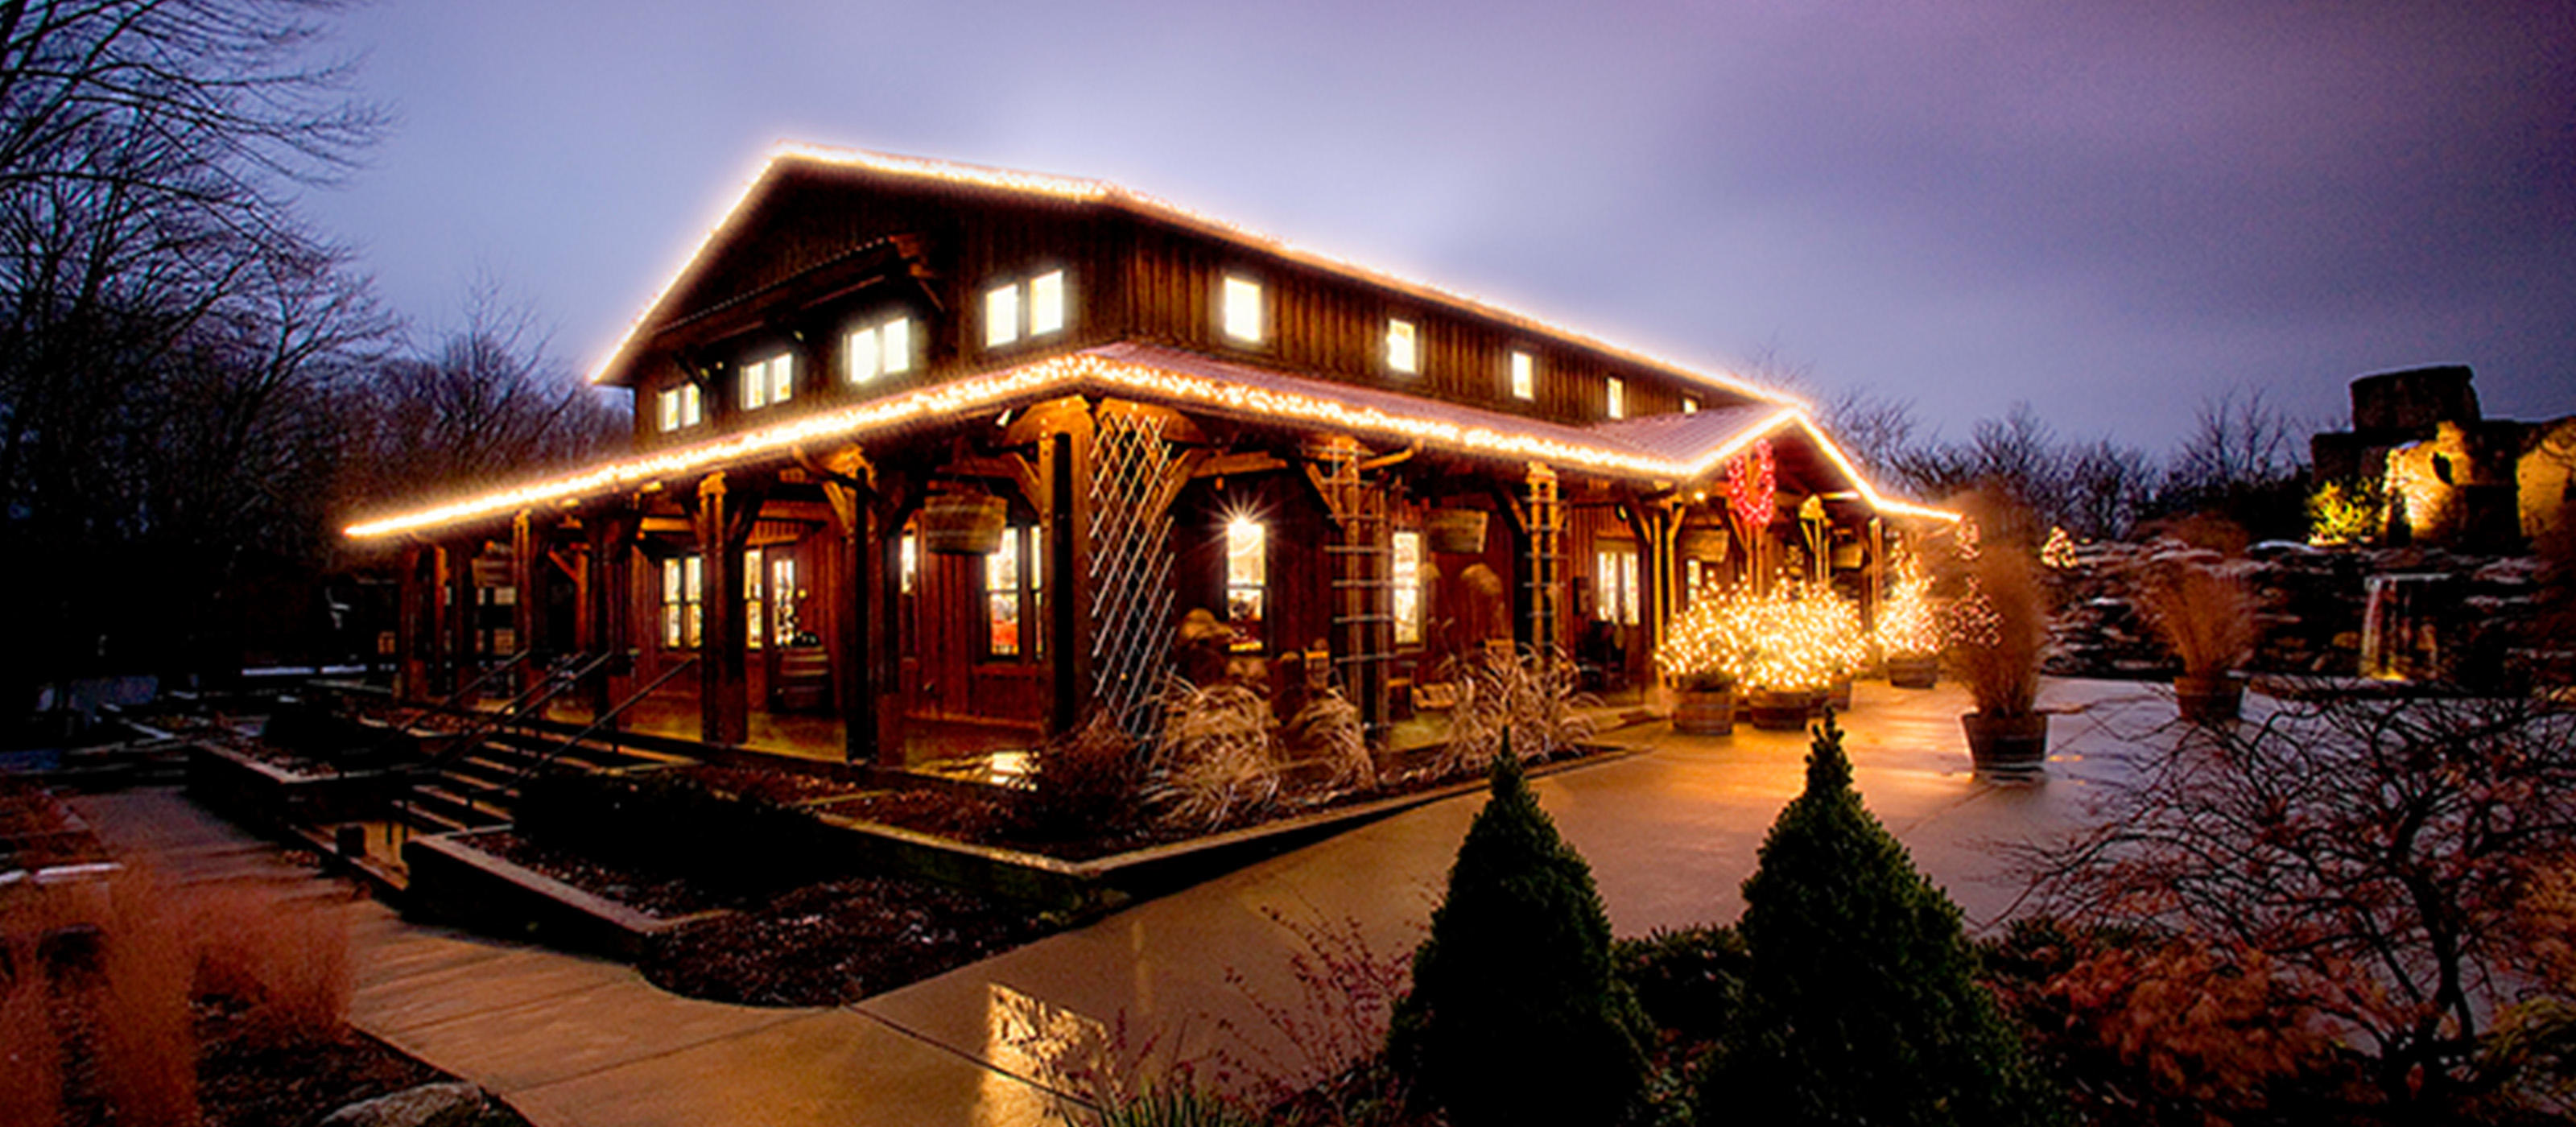 Oliver Winery with holiday lights.